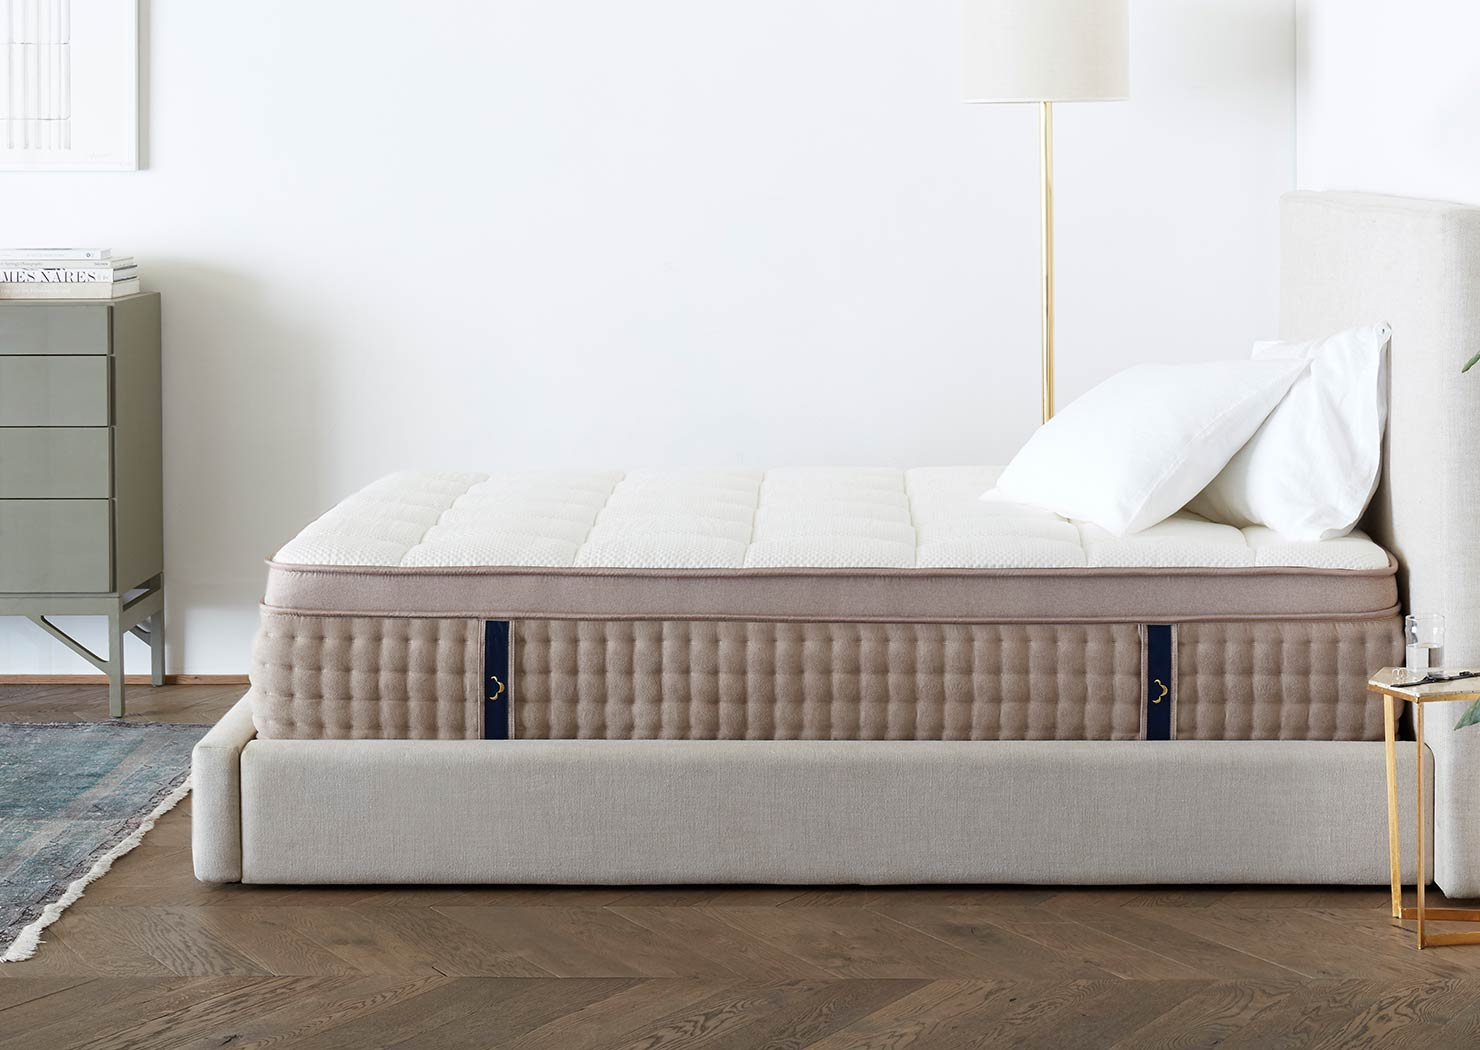 DreamCloud luxury sleep mattress